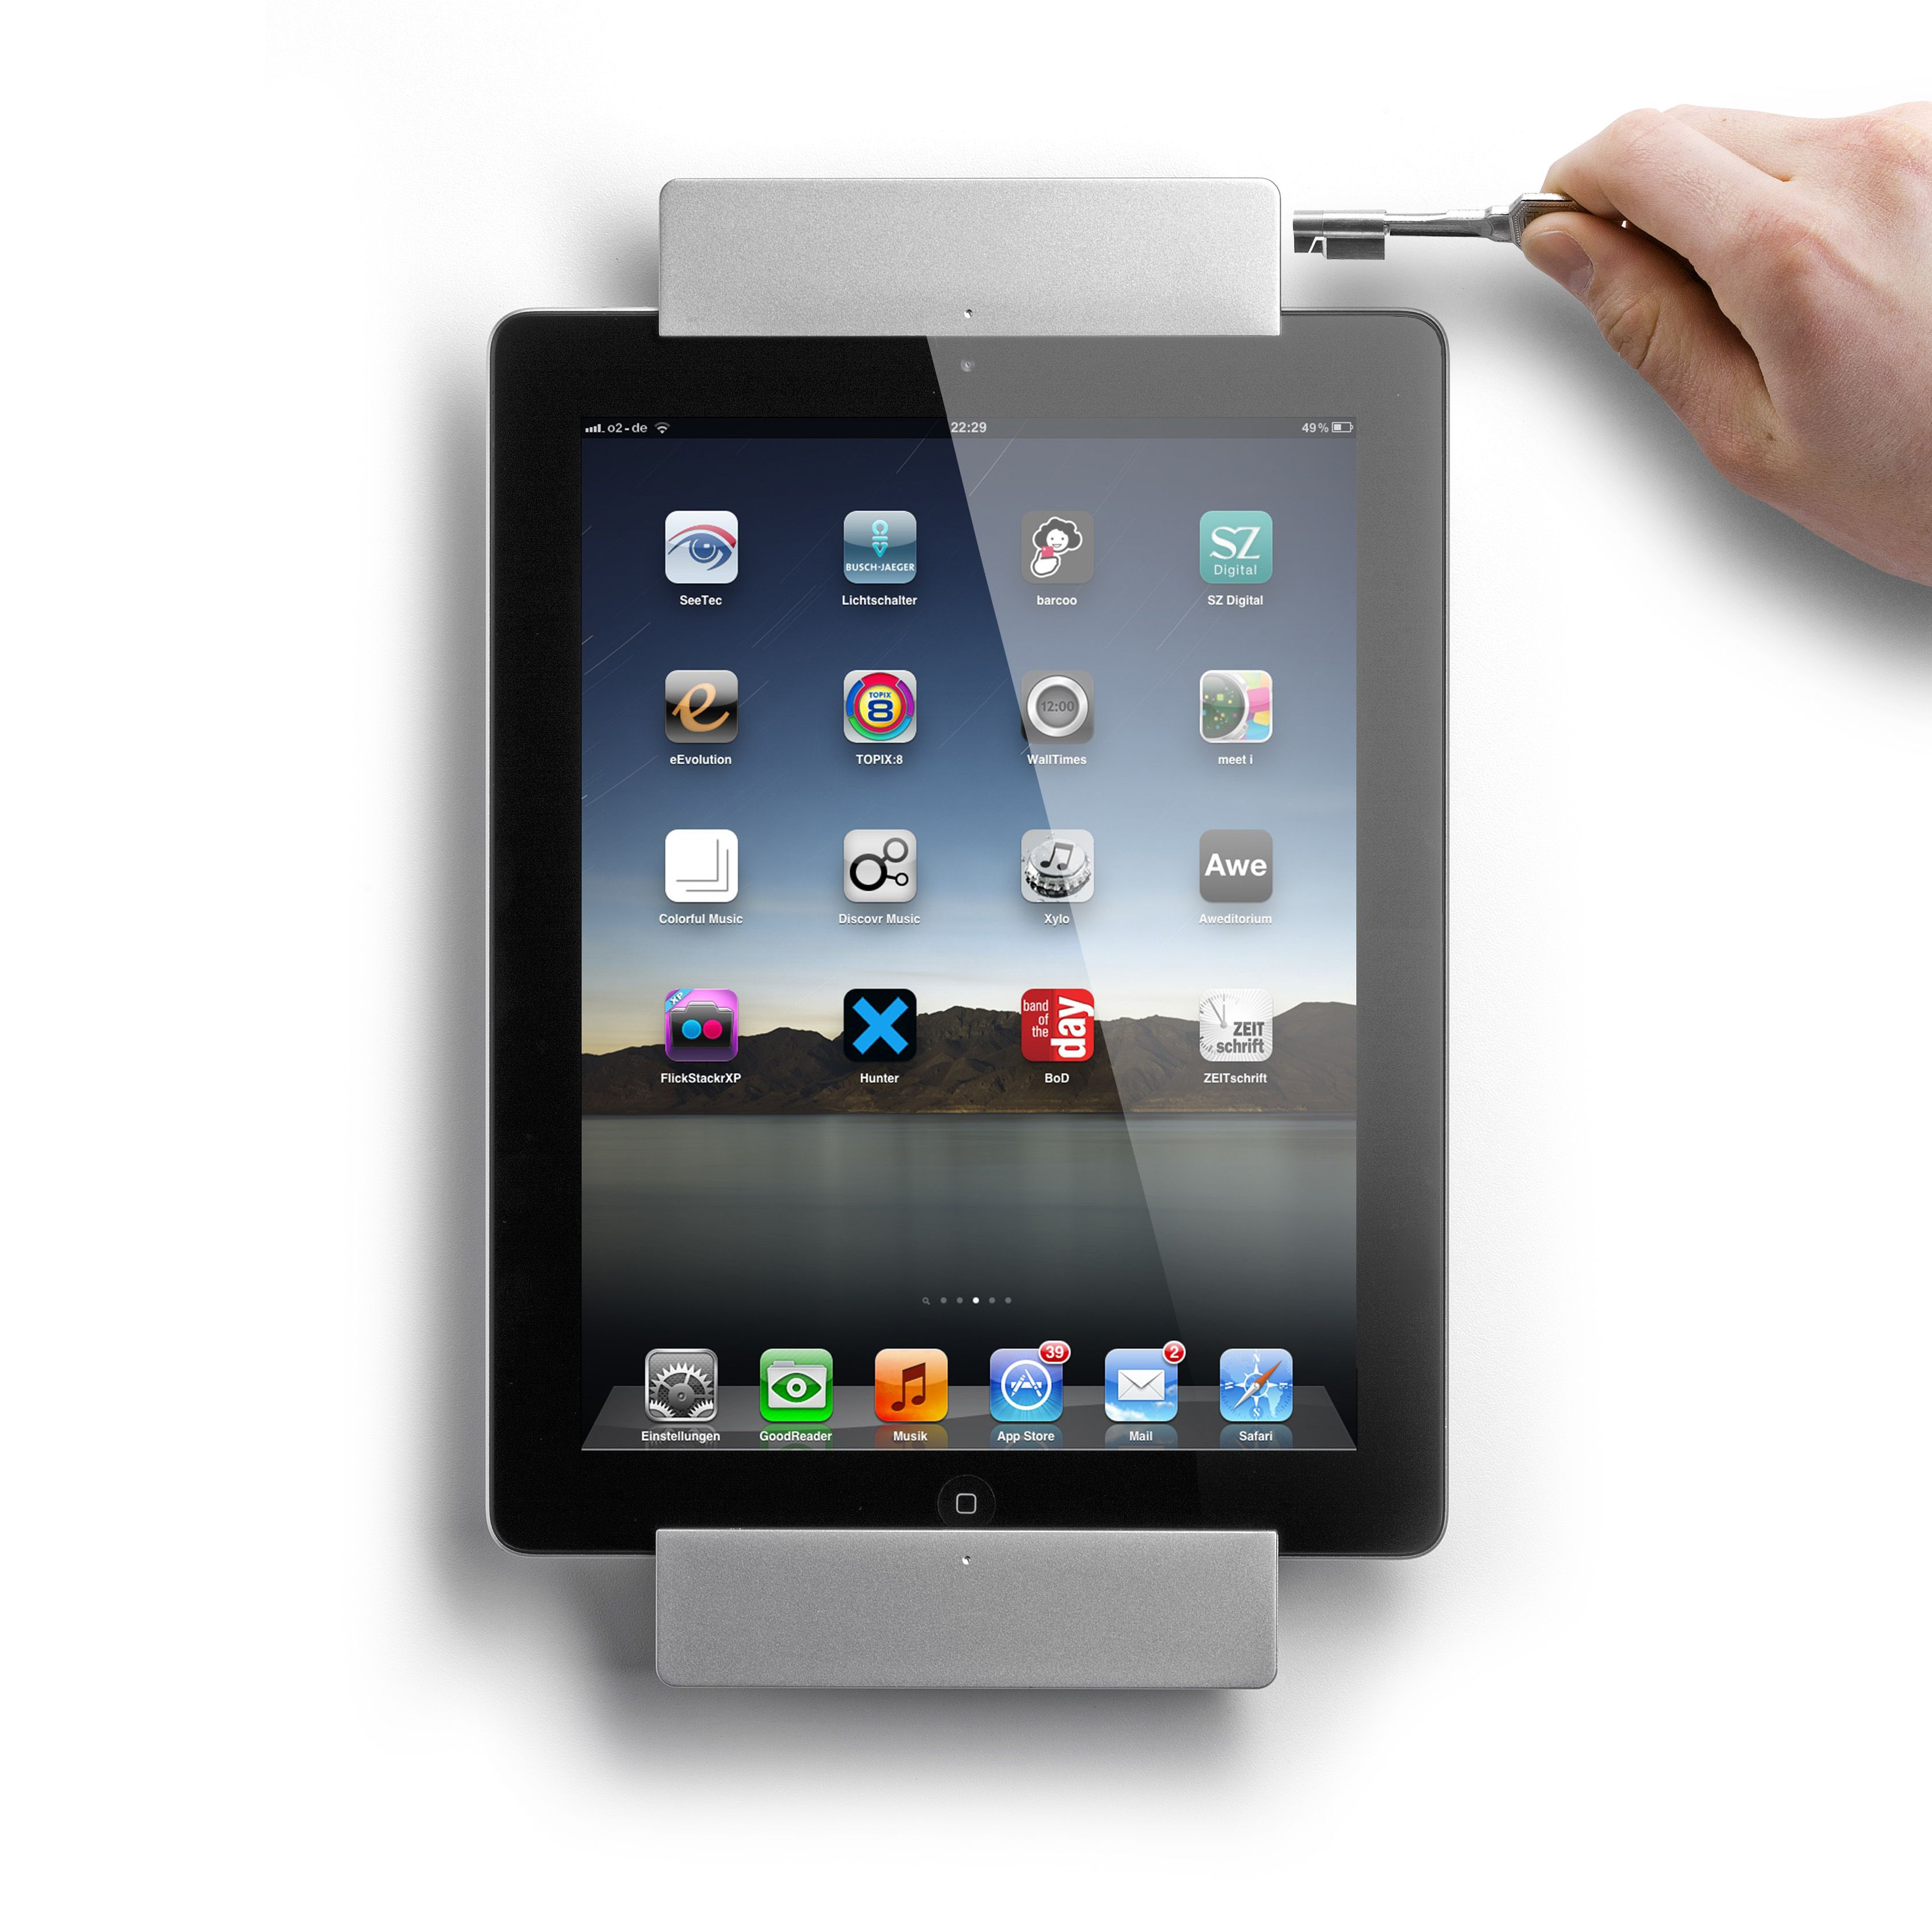 scharge in wall power supply for sdock easy handling you can insert your ipad into